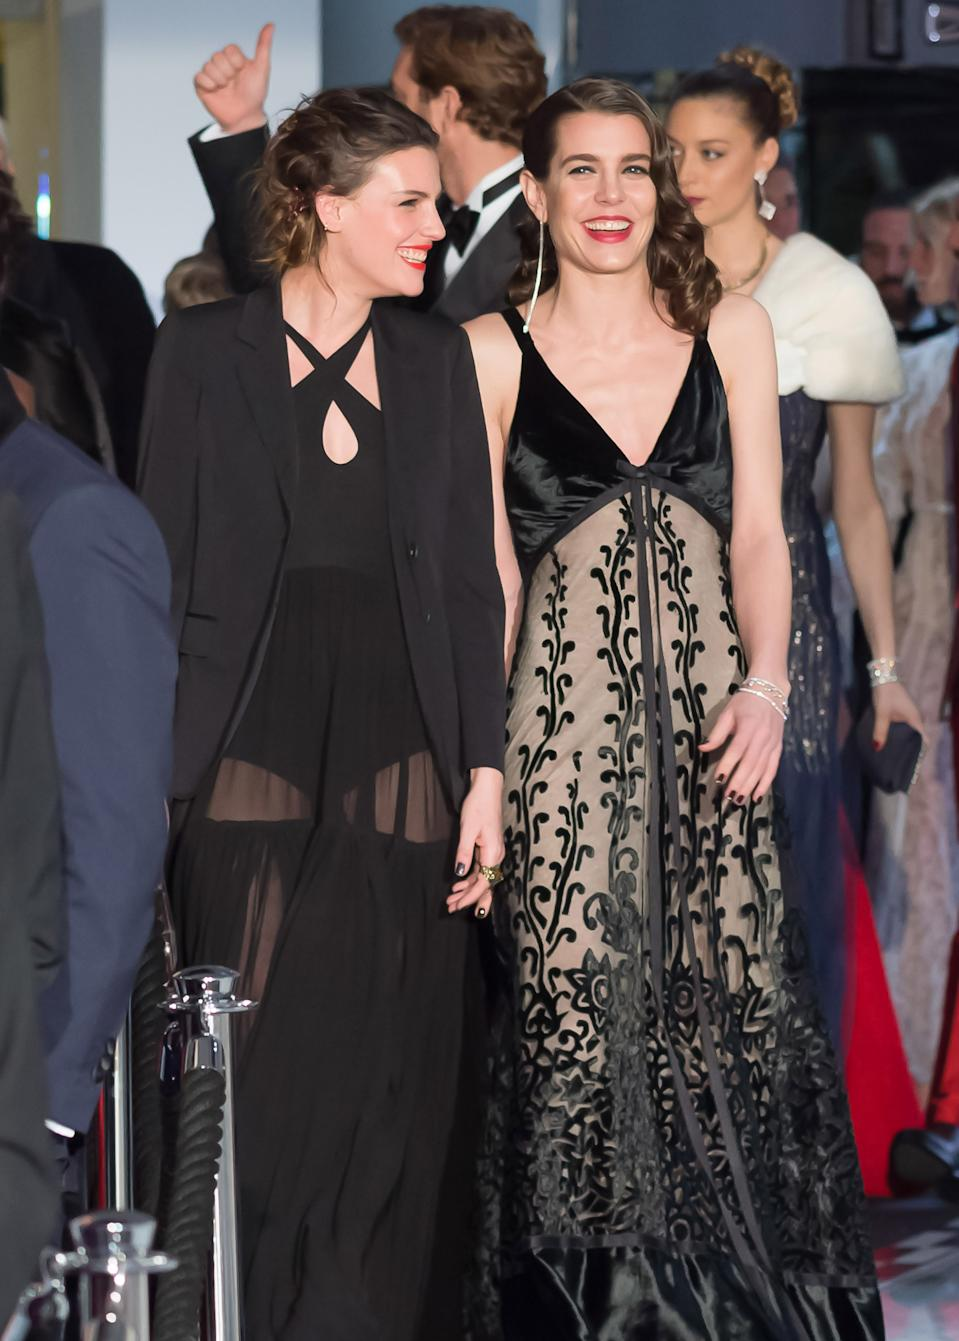 MONTE-CARLO, MONACO - MARCH 18:  (EDITORS NOTE: NO TABLOIDS)  - Juliette Maillot and Charlotte Casiraghi attend the Rose Ball 2017 Secession Viennoise To Benefit The Princess Grace Foundation at Sporting Monte-Carlo on March 18, 2017 in Monte-Carlo, Monaco. (Photo by Pierre Villard/Palais Princier/SBM/SC Pool - Corbis/Corbis via Getty Images)